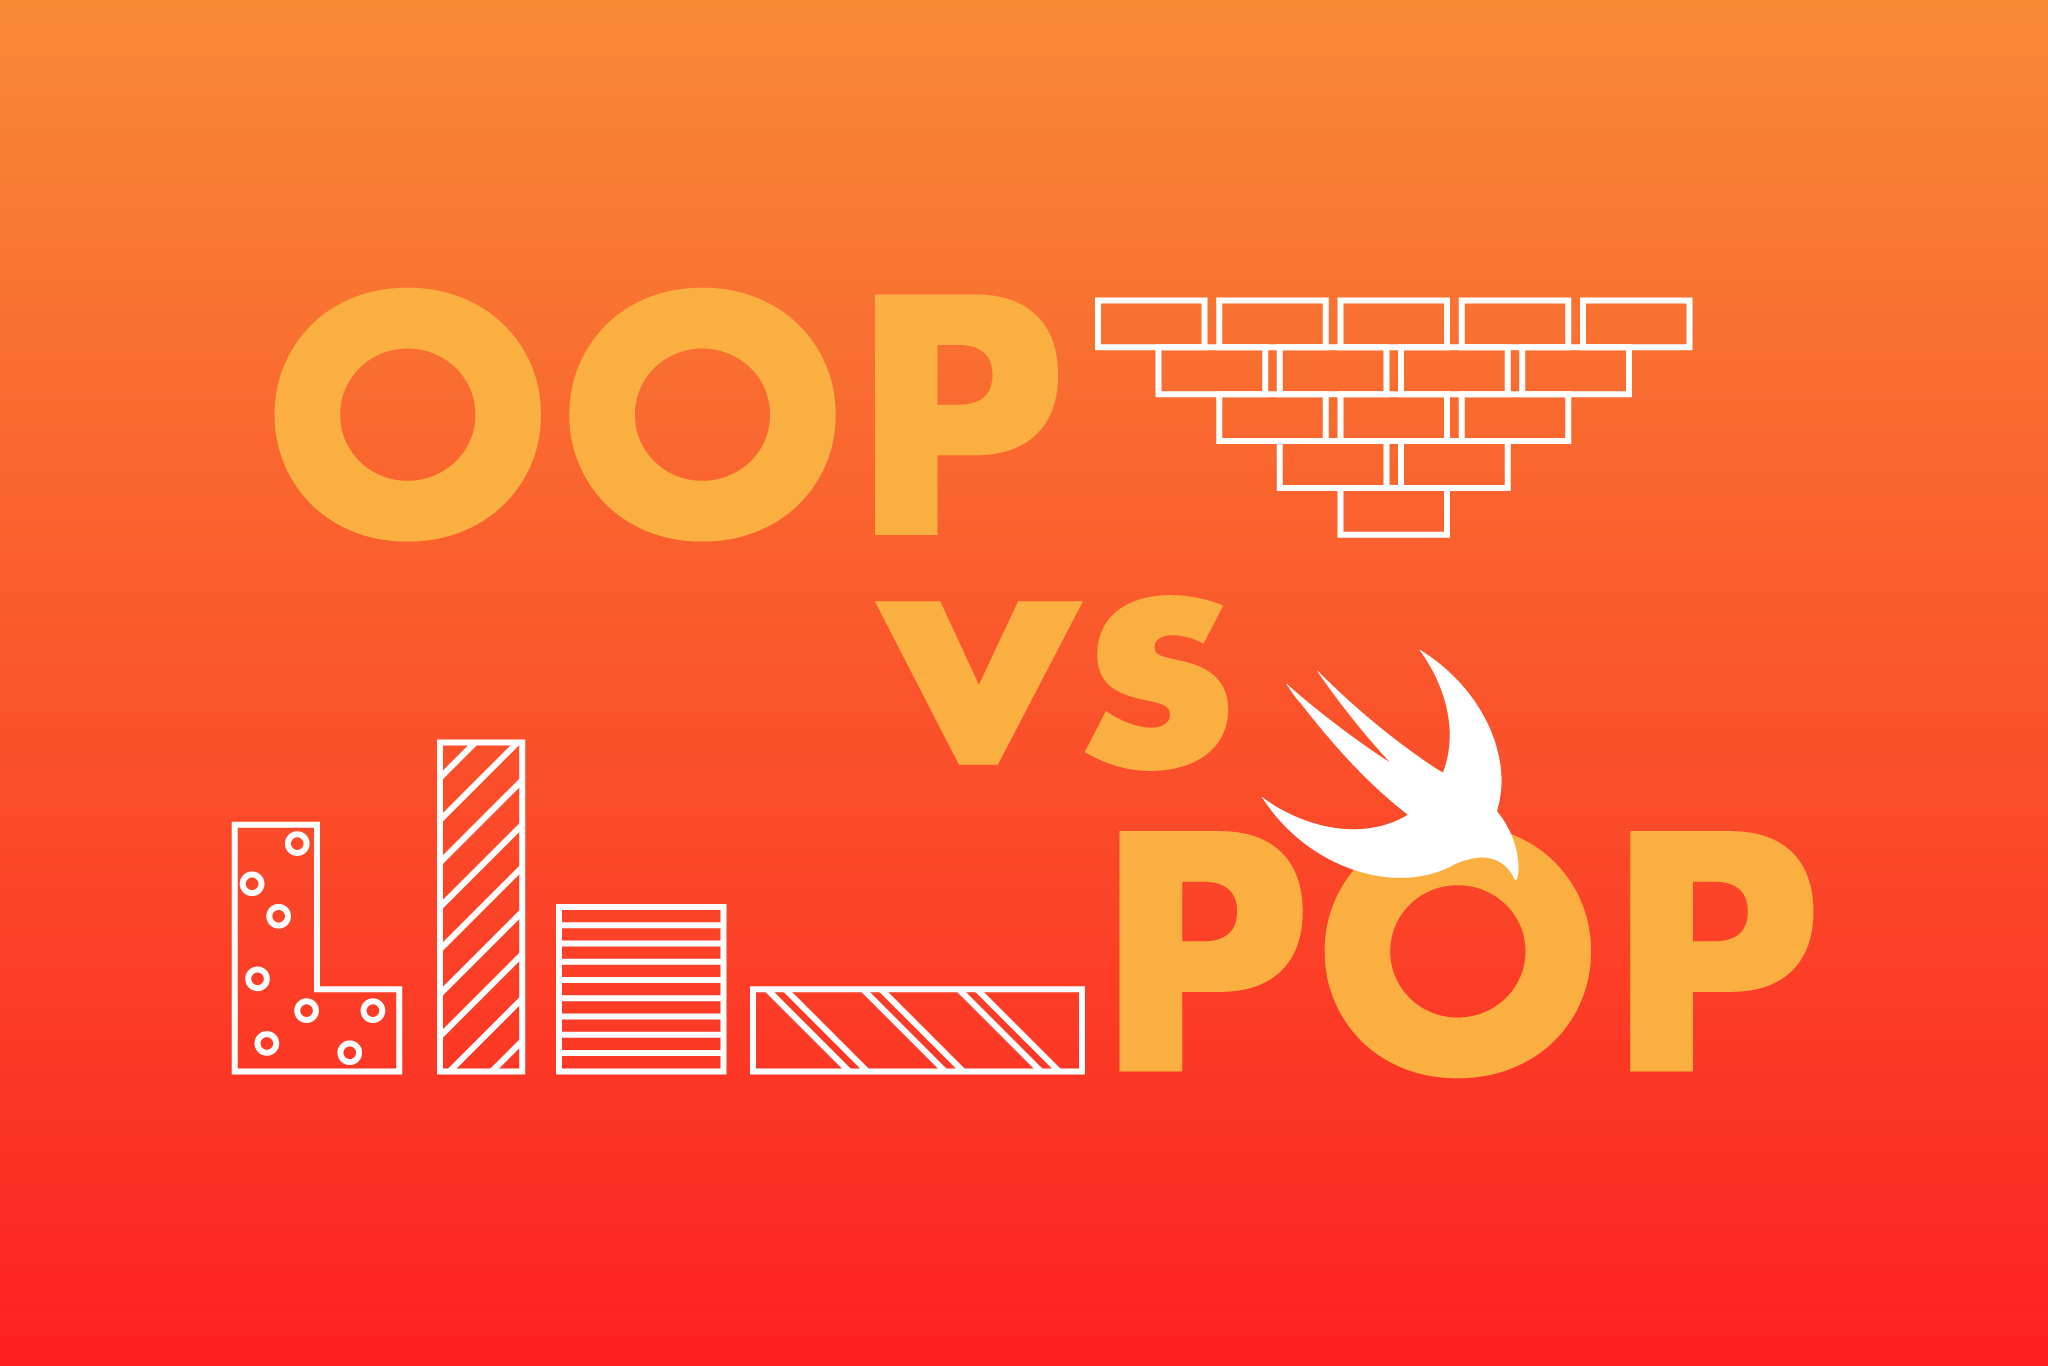 Protocol-oriented vs object-oriented in Swift: translating complicated world into simple code